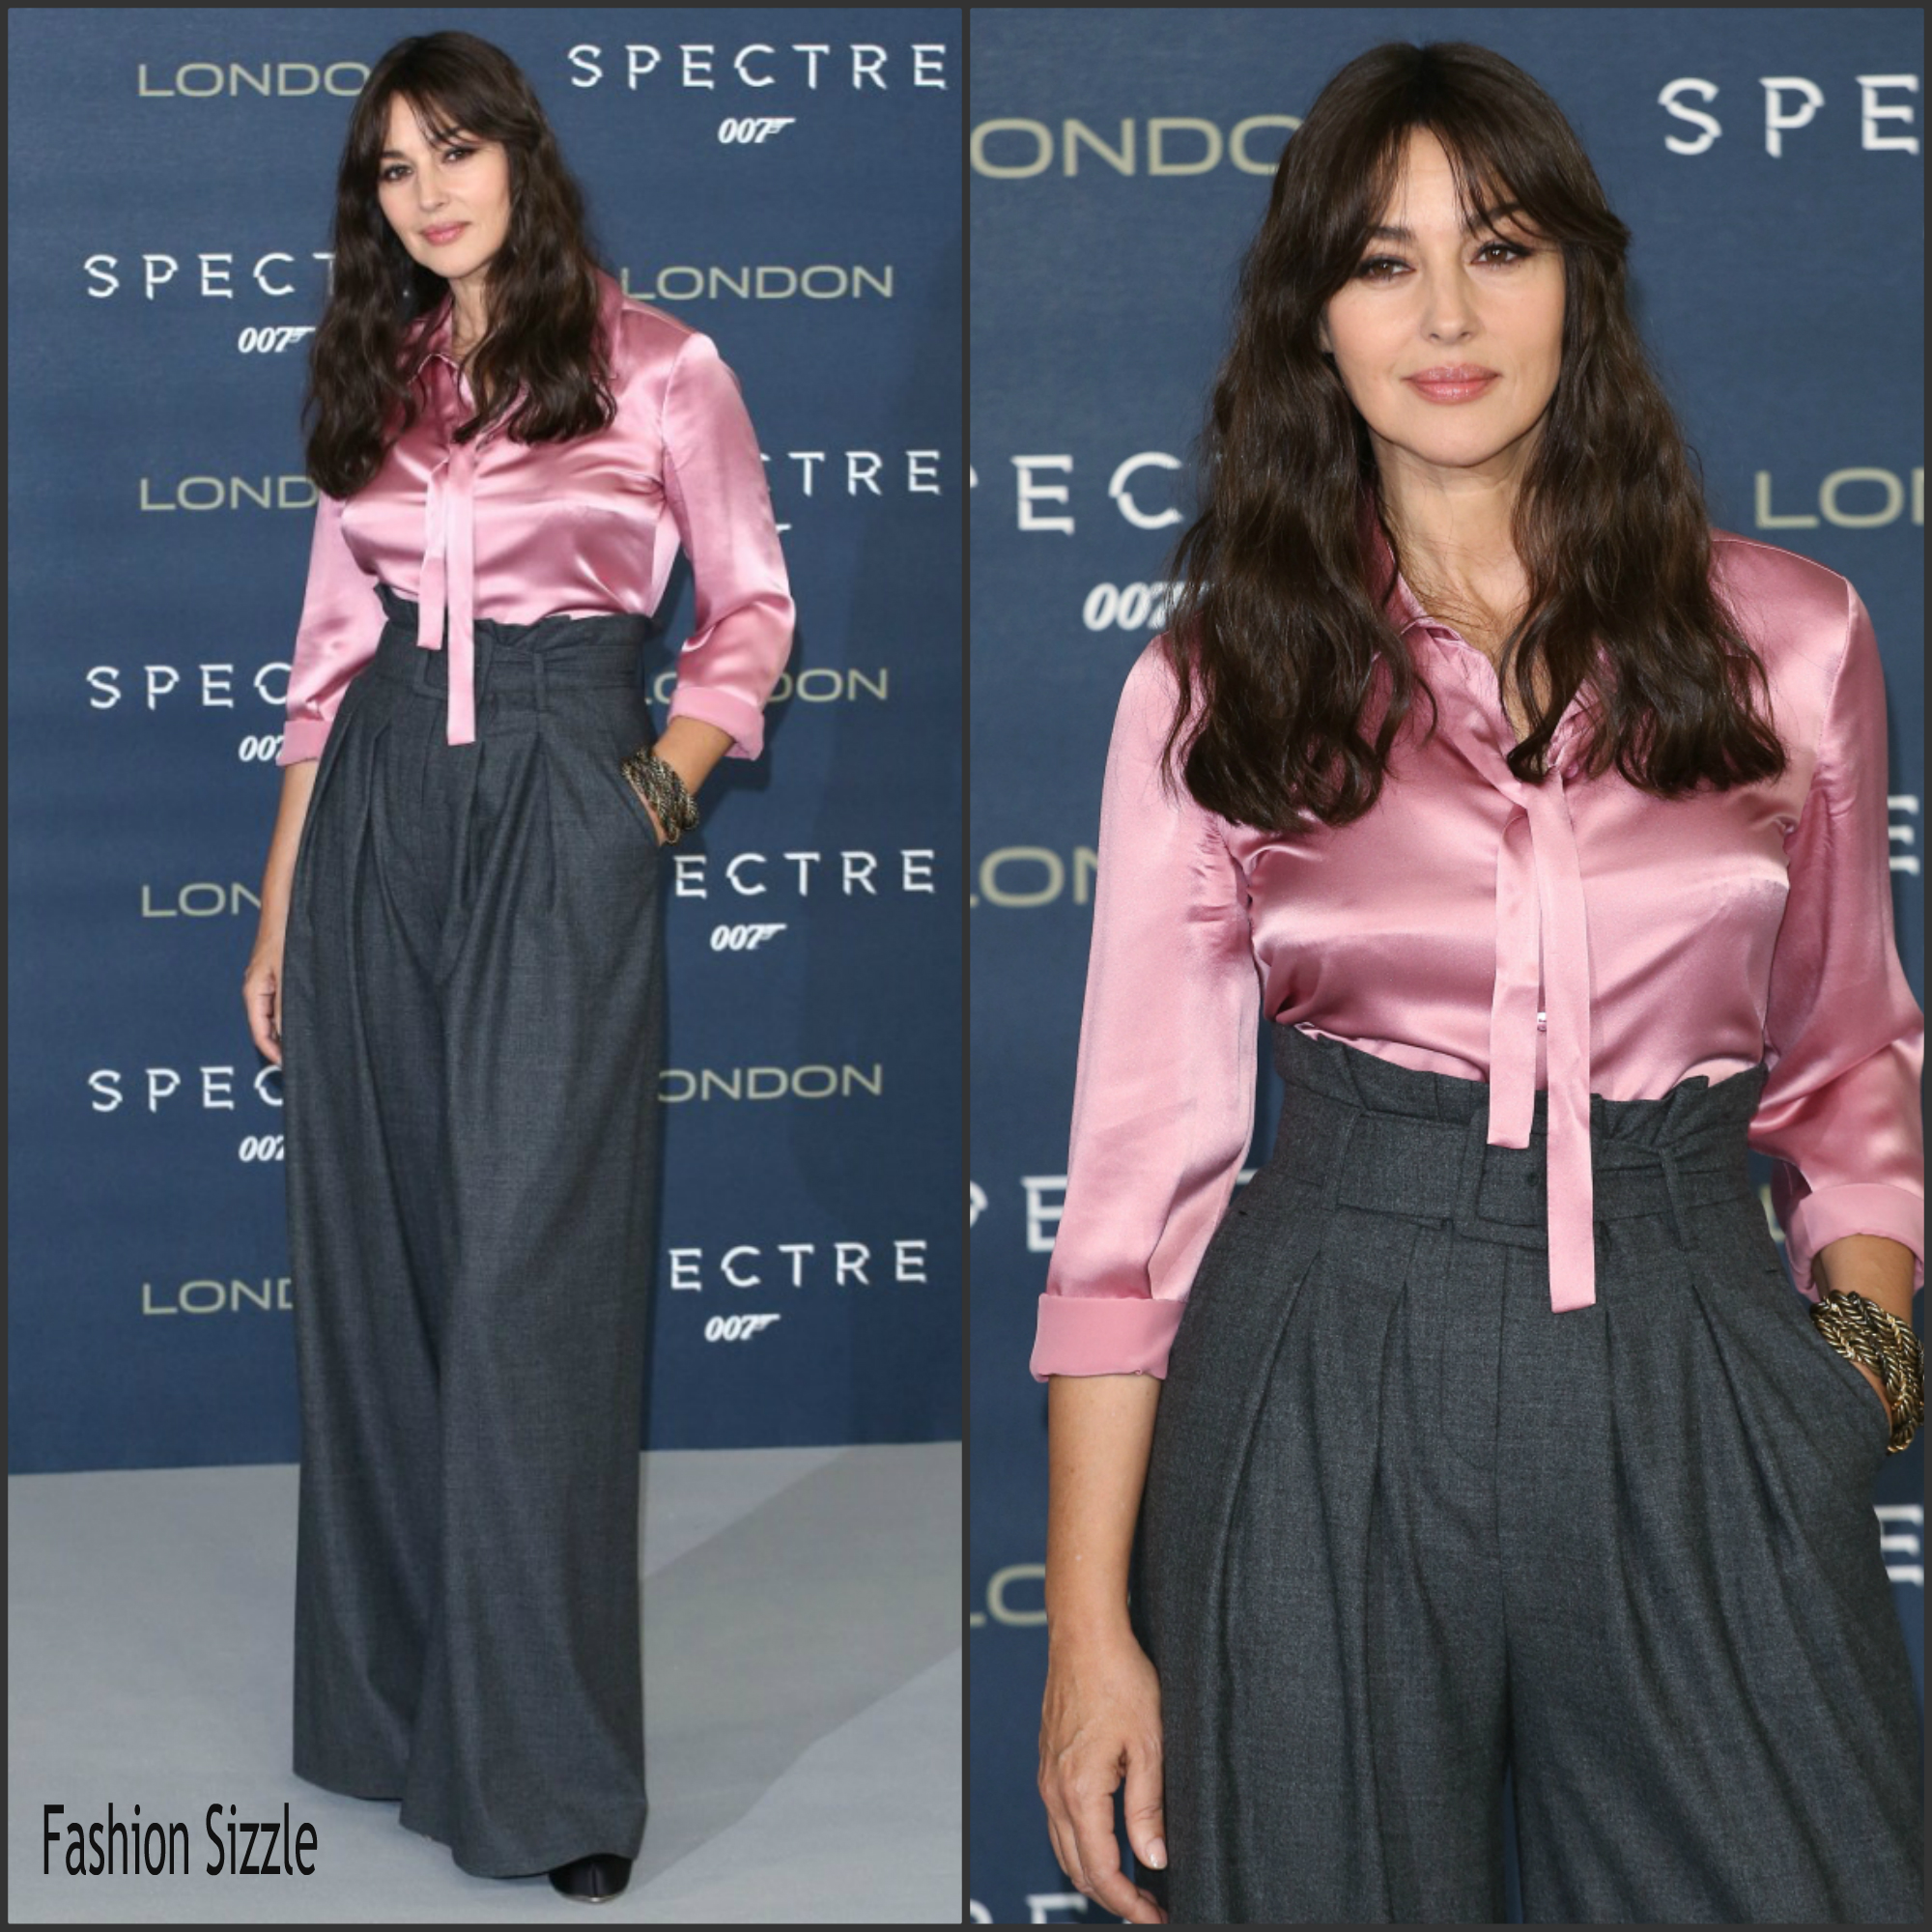 monica-bellucci-in-paule-ka-spectre-london-photocall